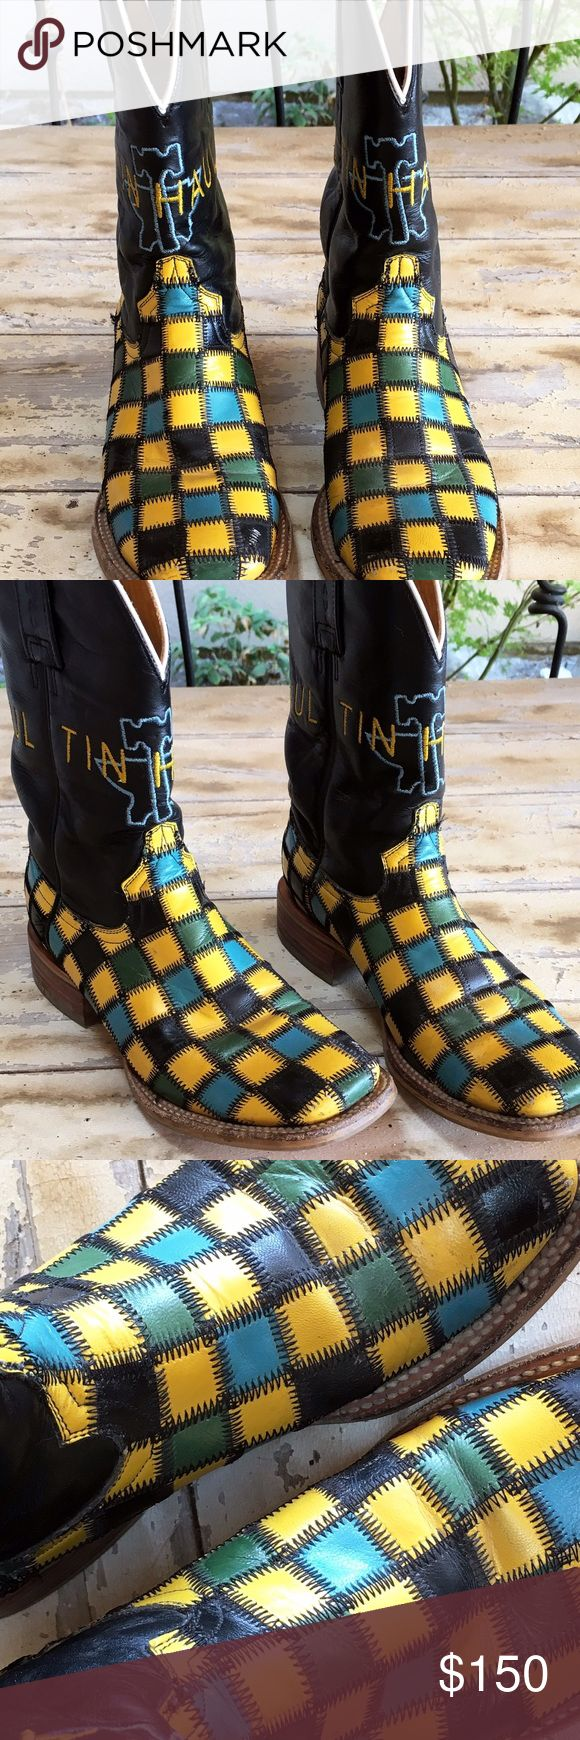 Tin Haul cowboy boots Women's Tin Haul square toe boots! Green and yellow check,Worn a few times, great condition size 6.5 Tin Haul Shoes Winter & Rain Boots